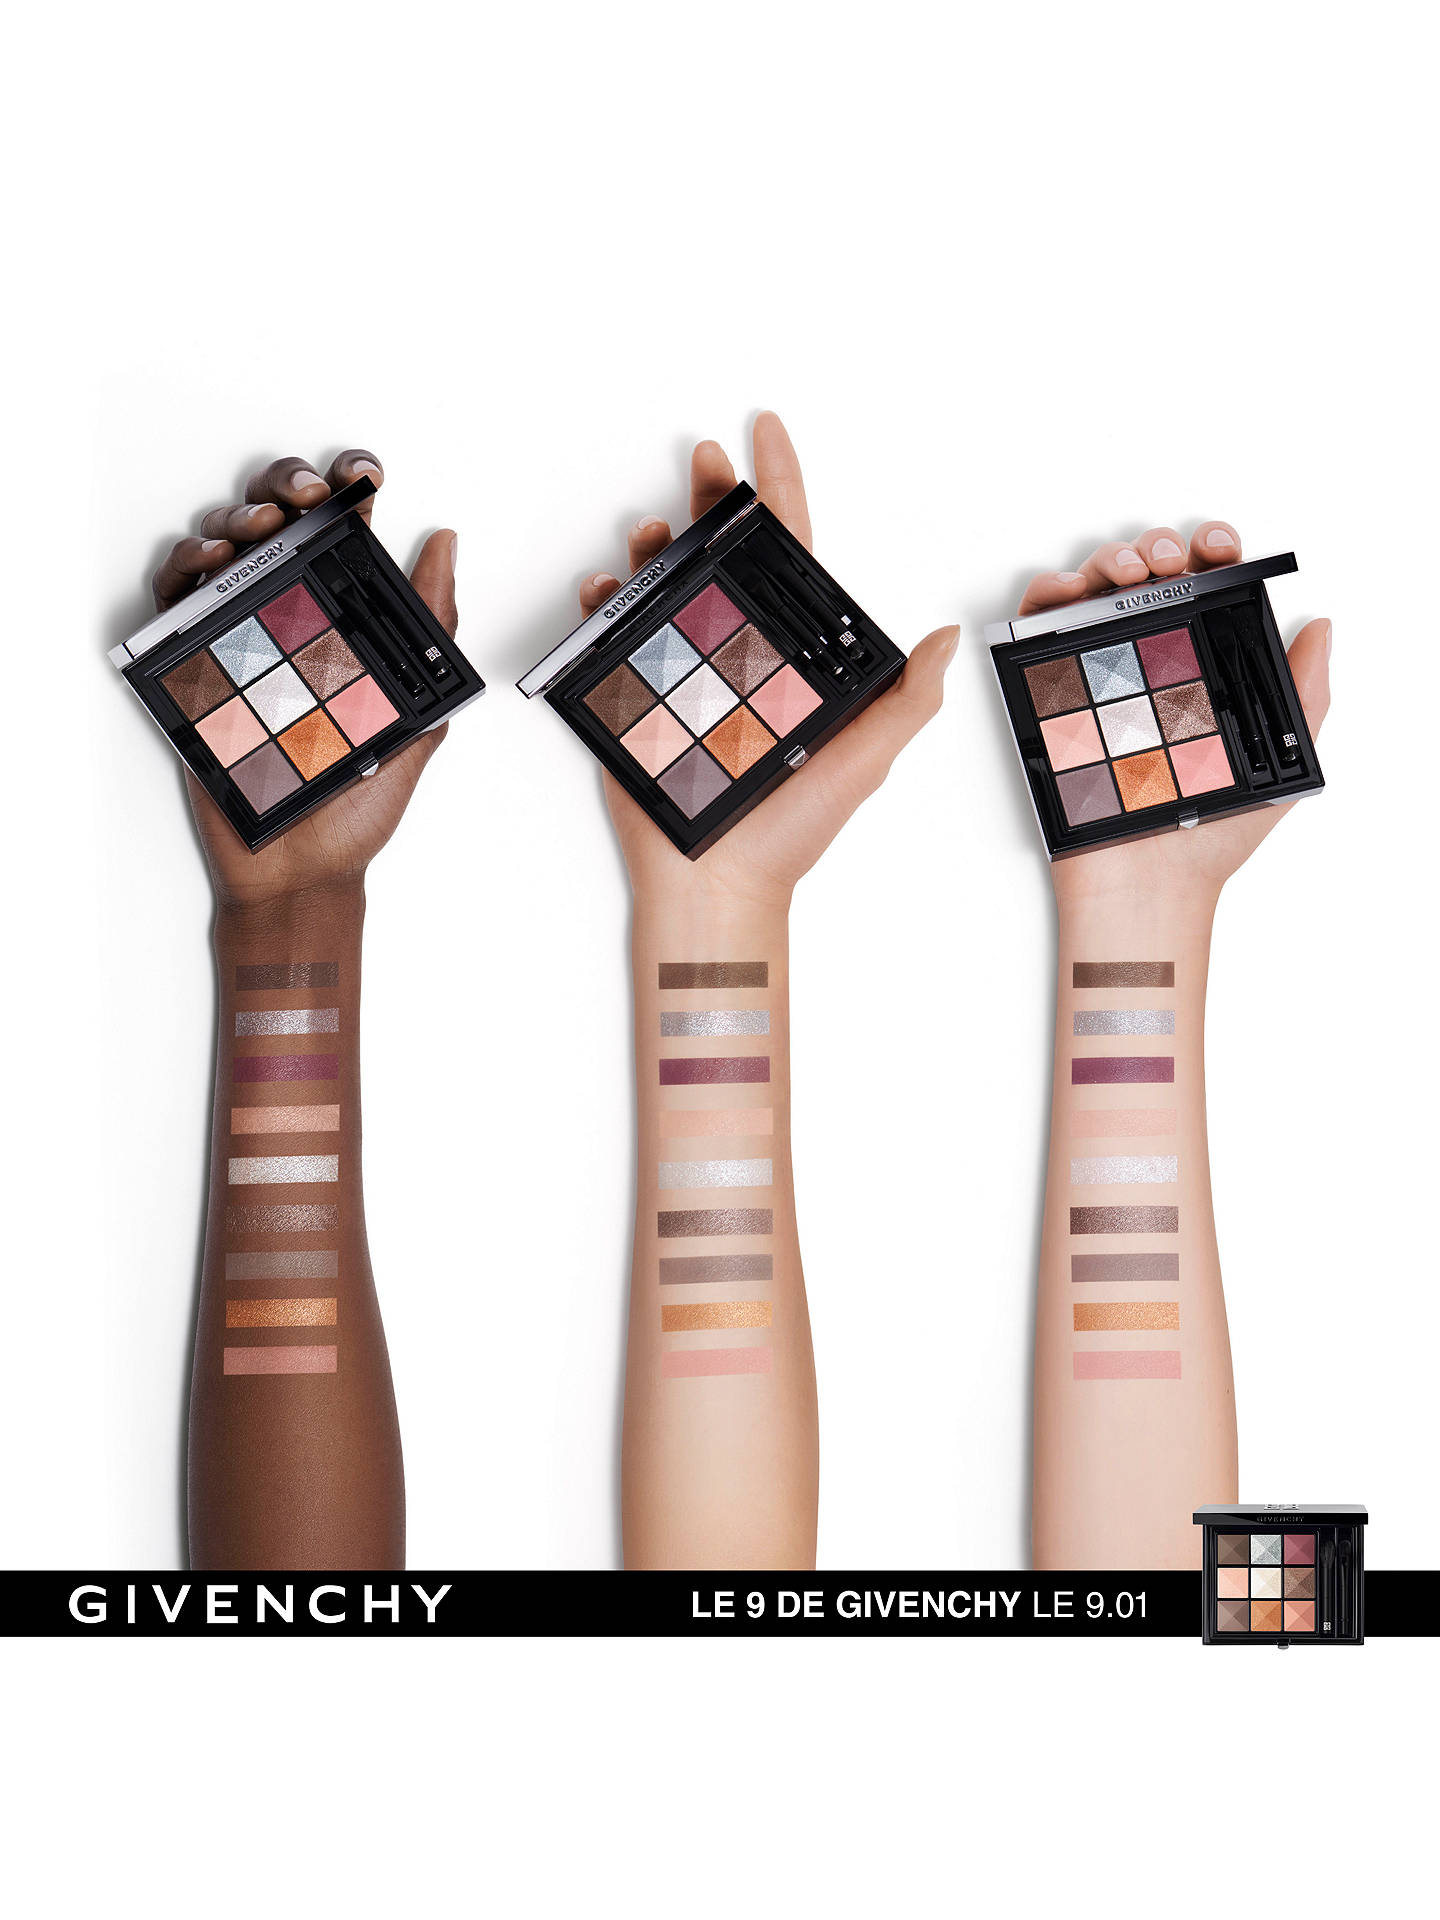 Buy Givenchy Le 9 de Givenchy Multi-Finish Eyeshadow Palette, 9.01 Online at johnlewis.com